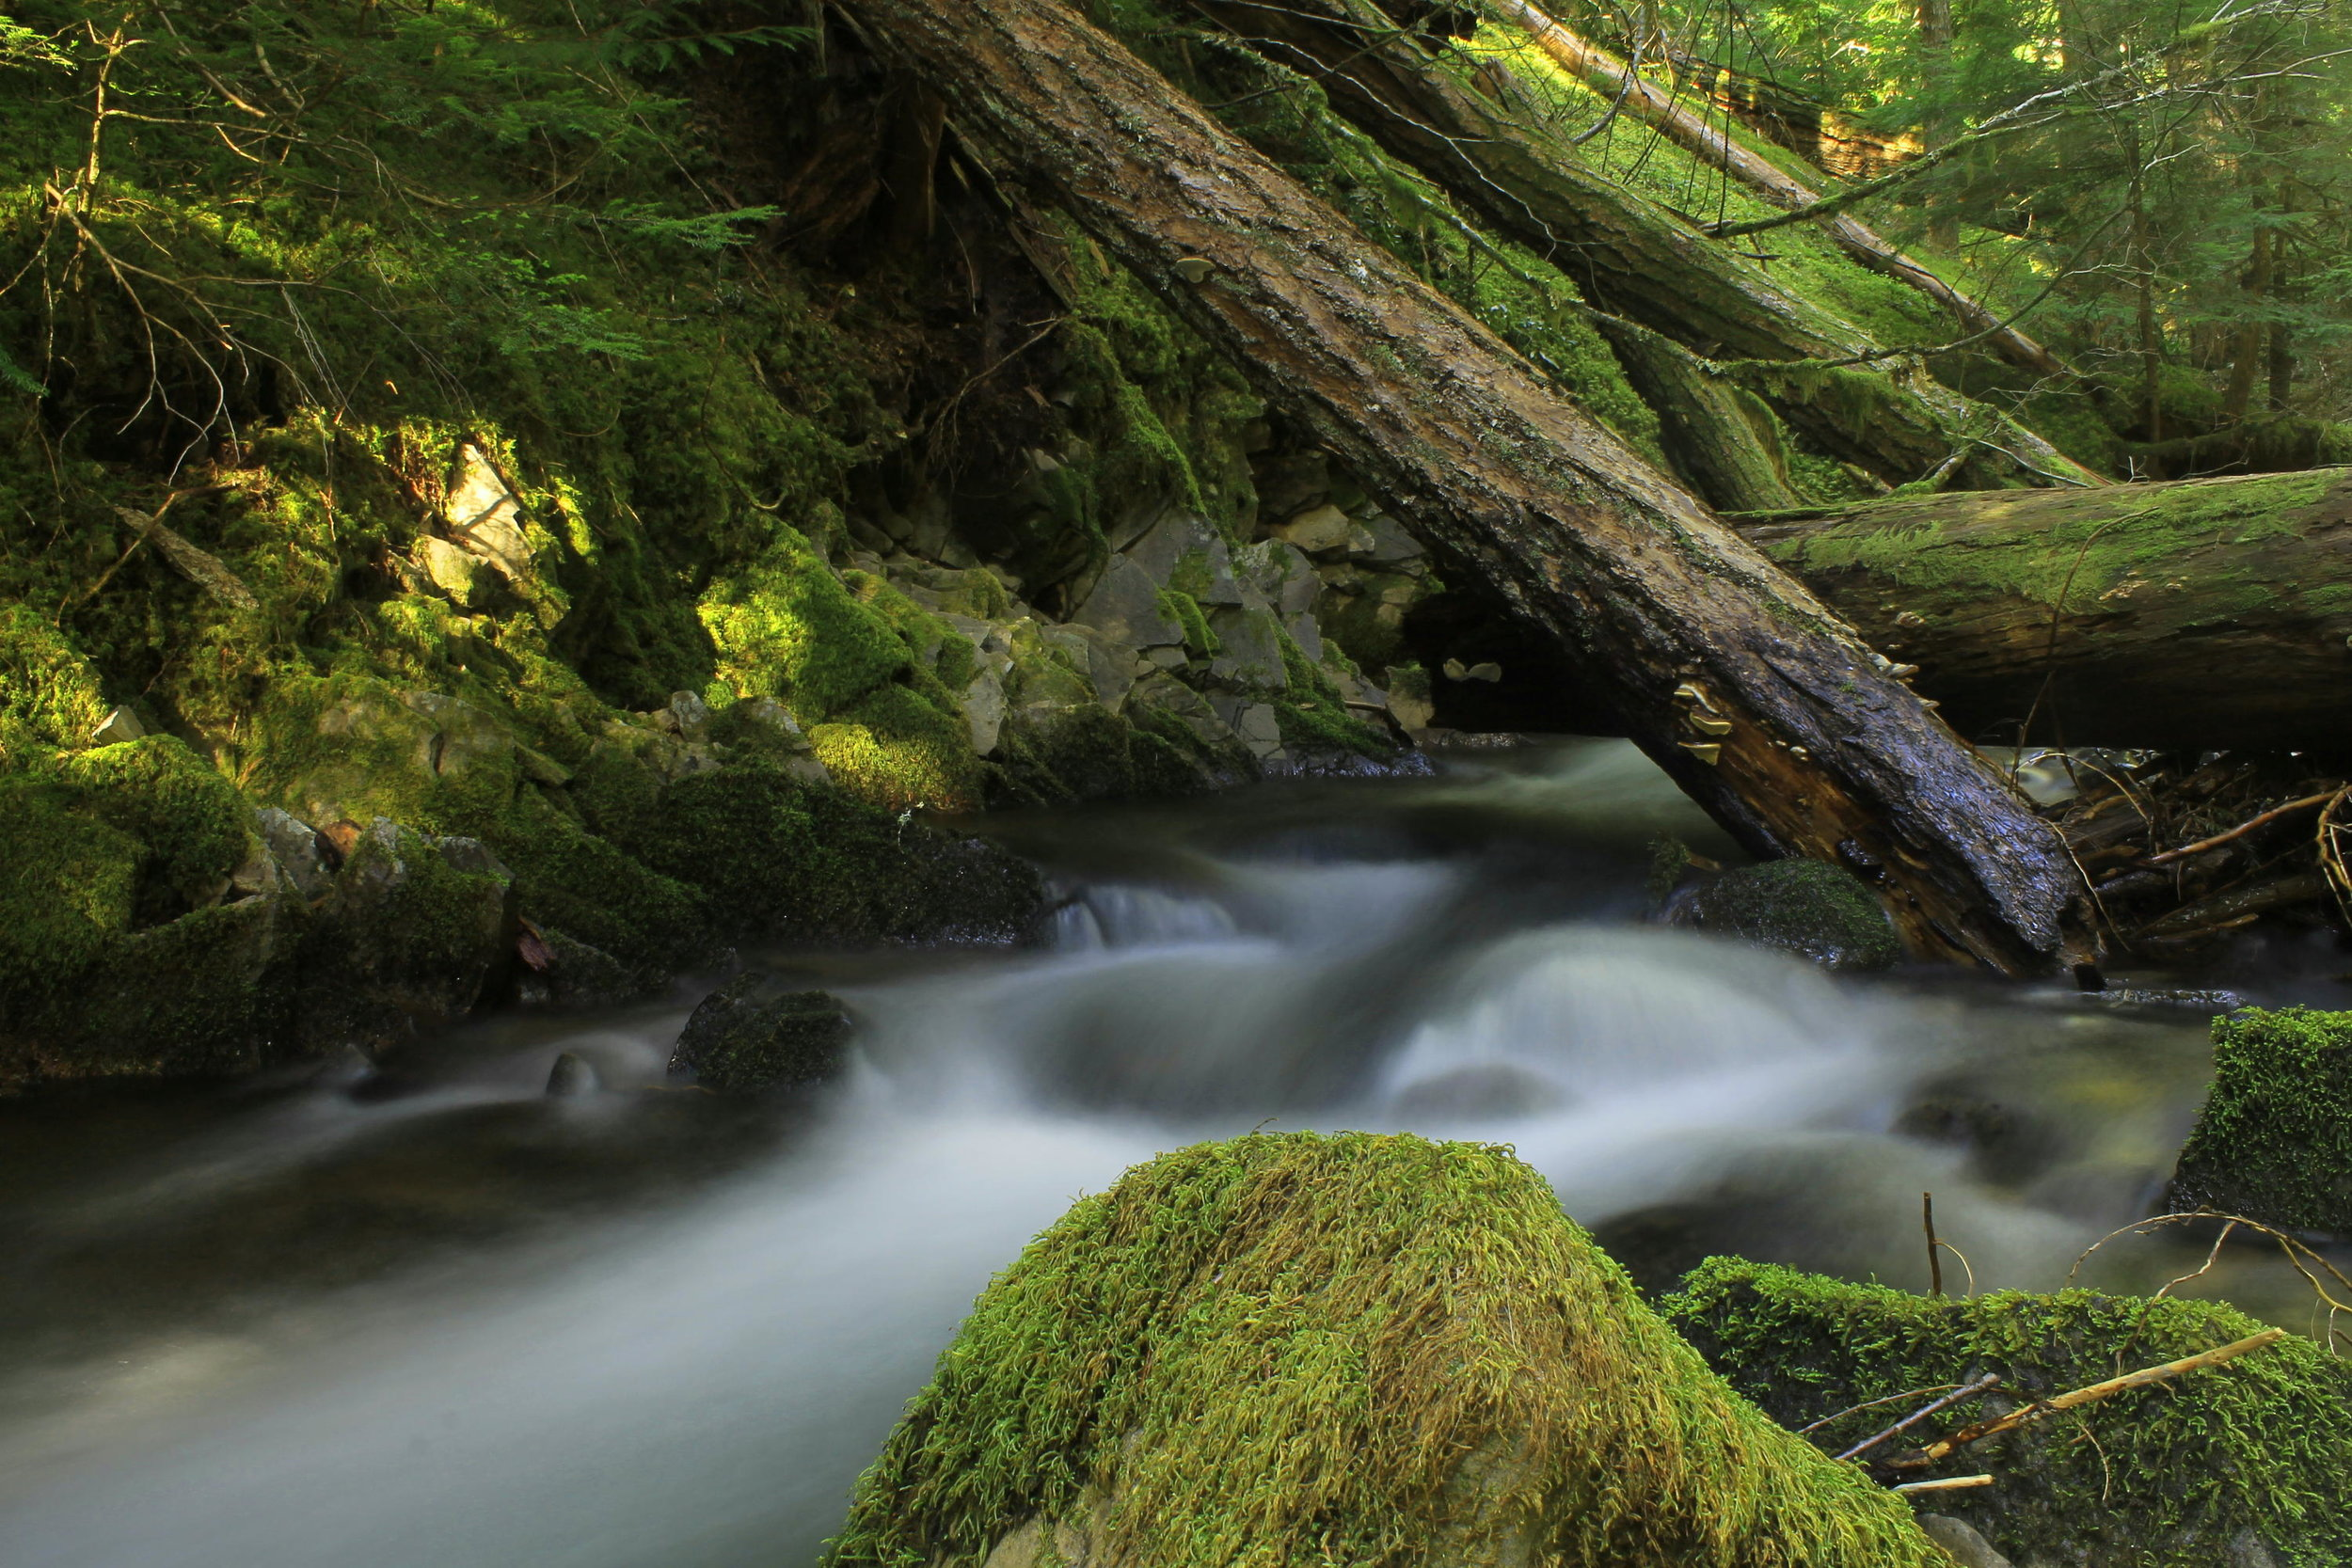 Beautiful Rho Creek, deep in the upper reaches of the Clackamas River canyon.